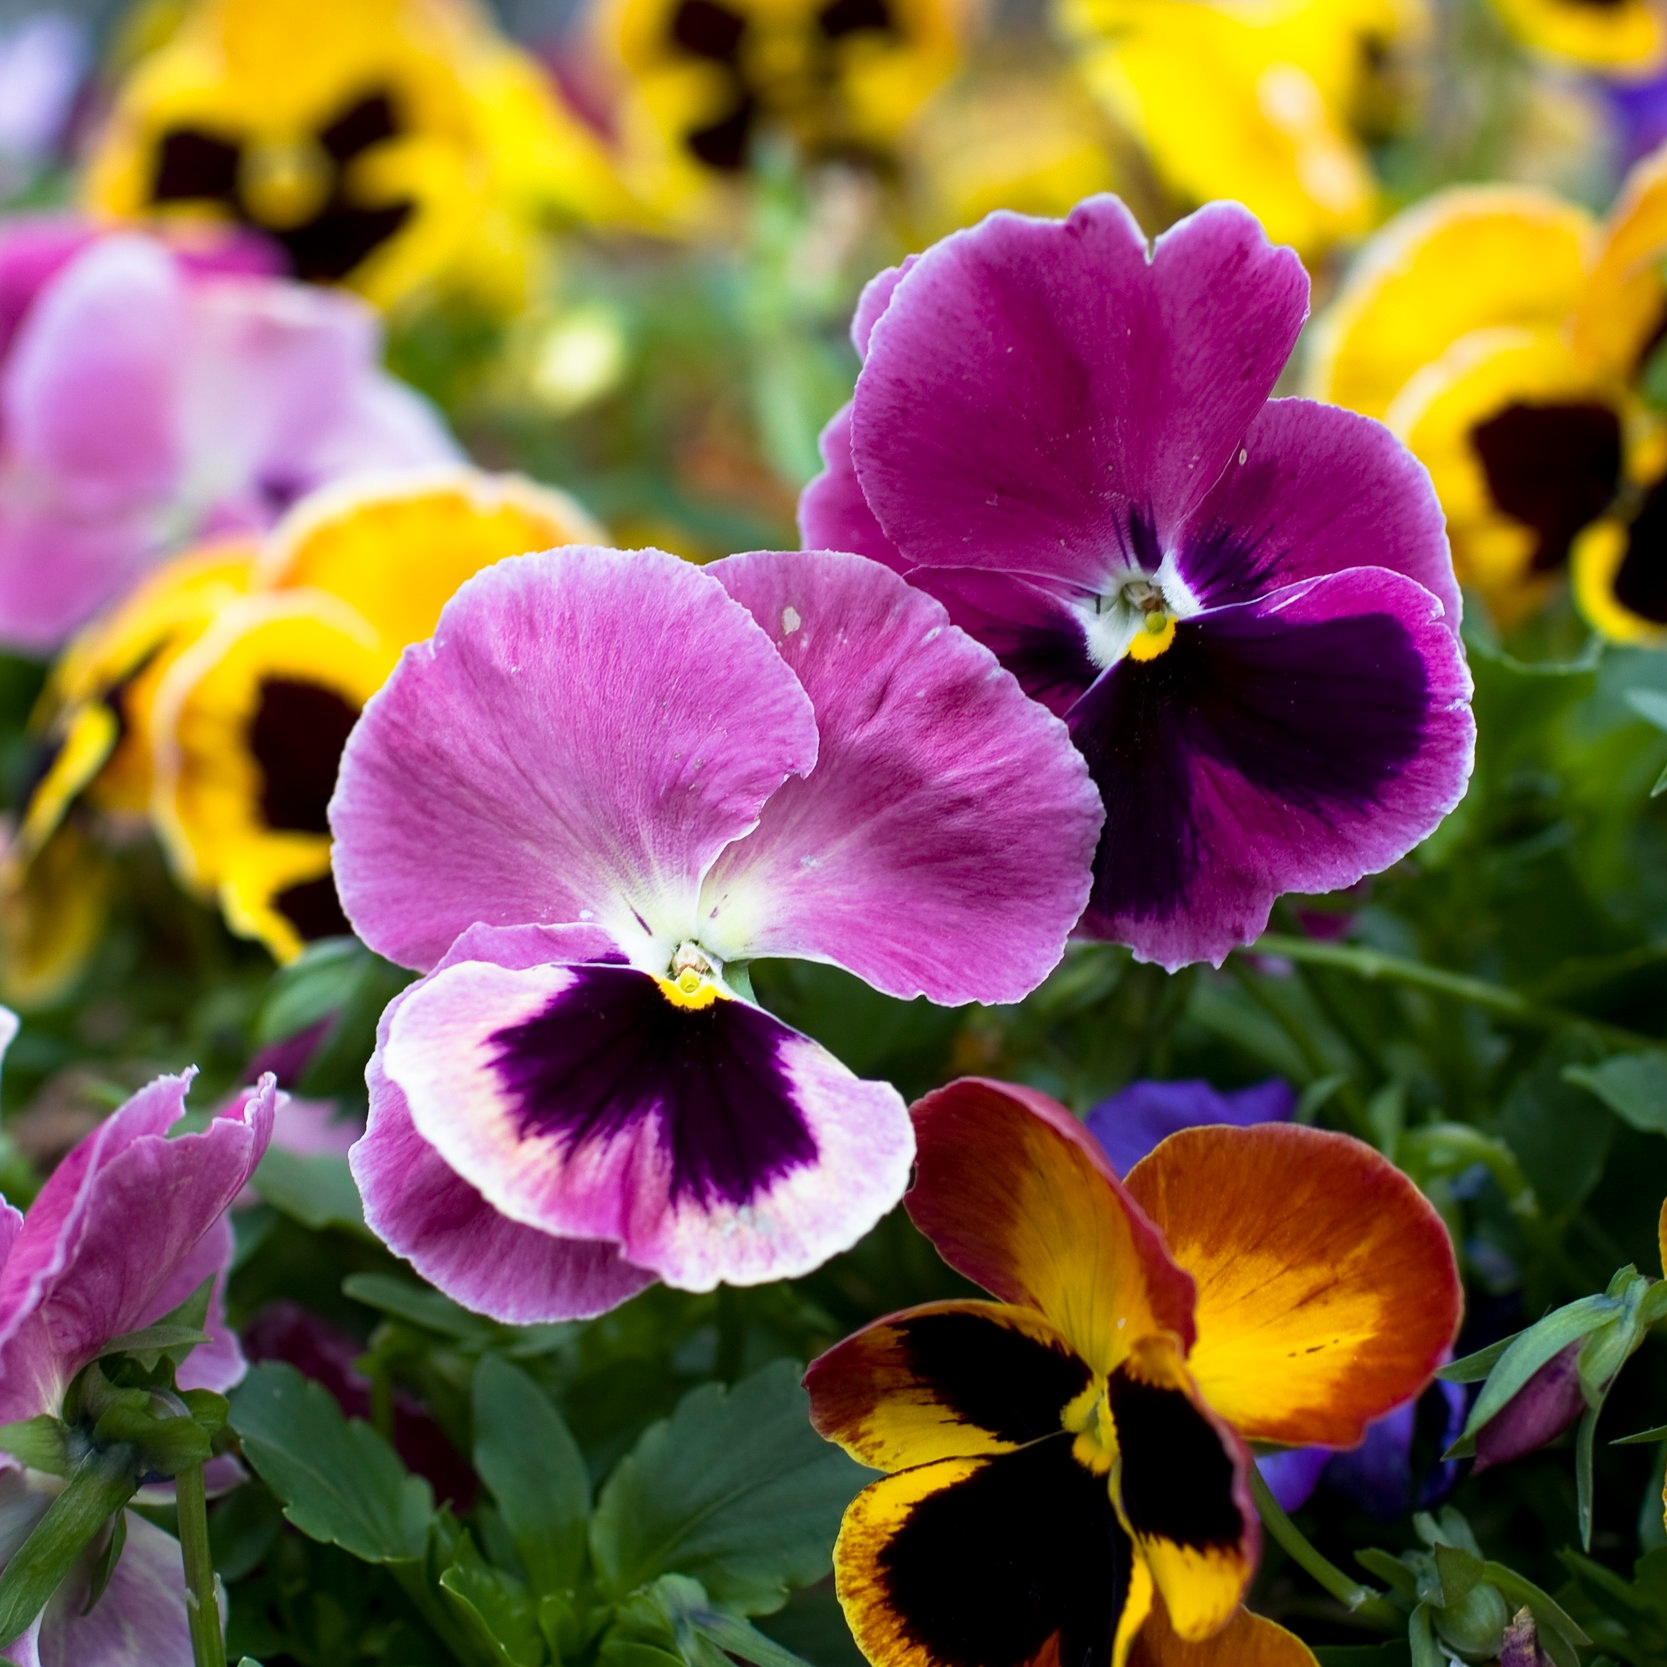 Pansies & Violas - Cool season annual;Pansies thrive in the winter in full sun and the whole flower is edible! Same with Violas, however they can tolerate much more shade and have potential to reseed. Every time we come home the girls go to the garden and pick a flower to eat.